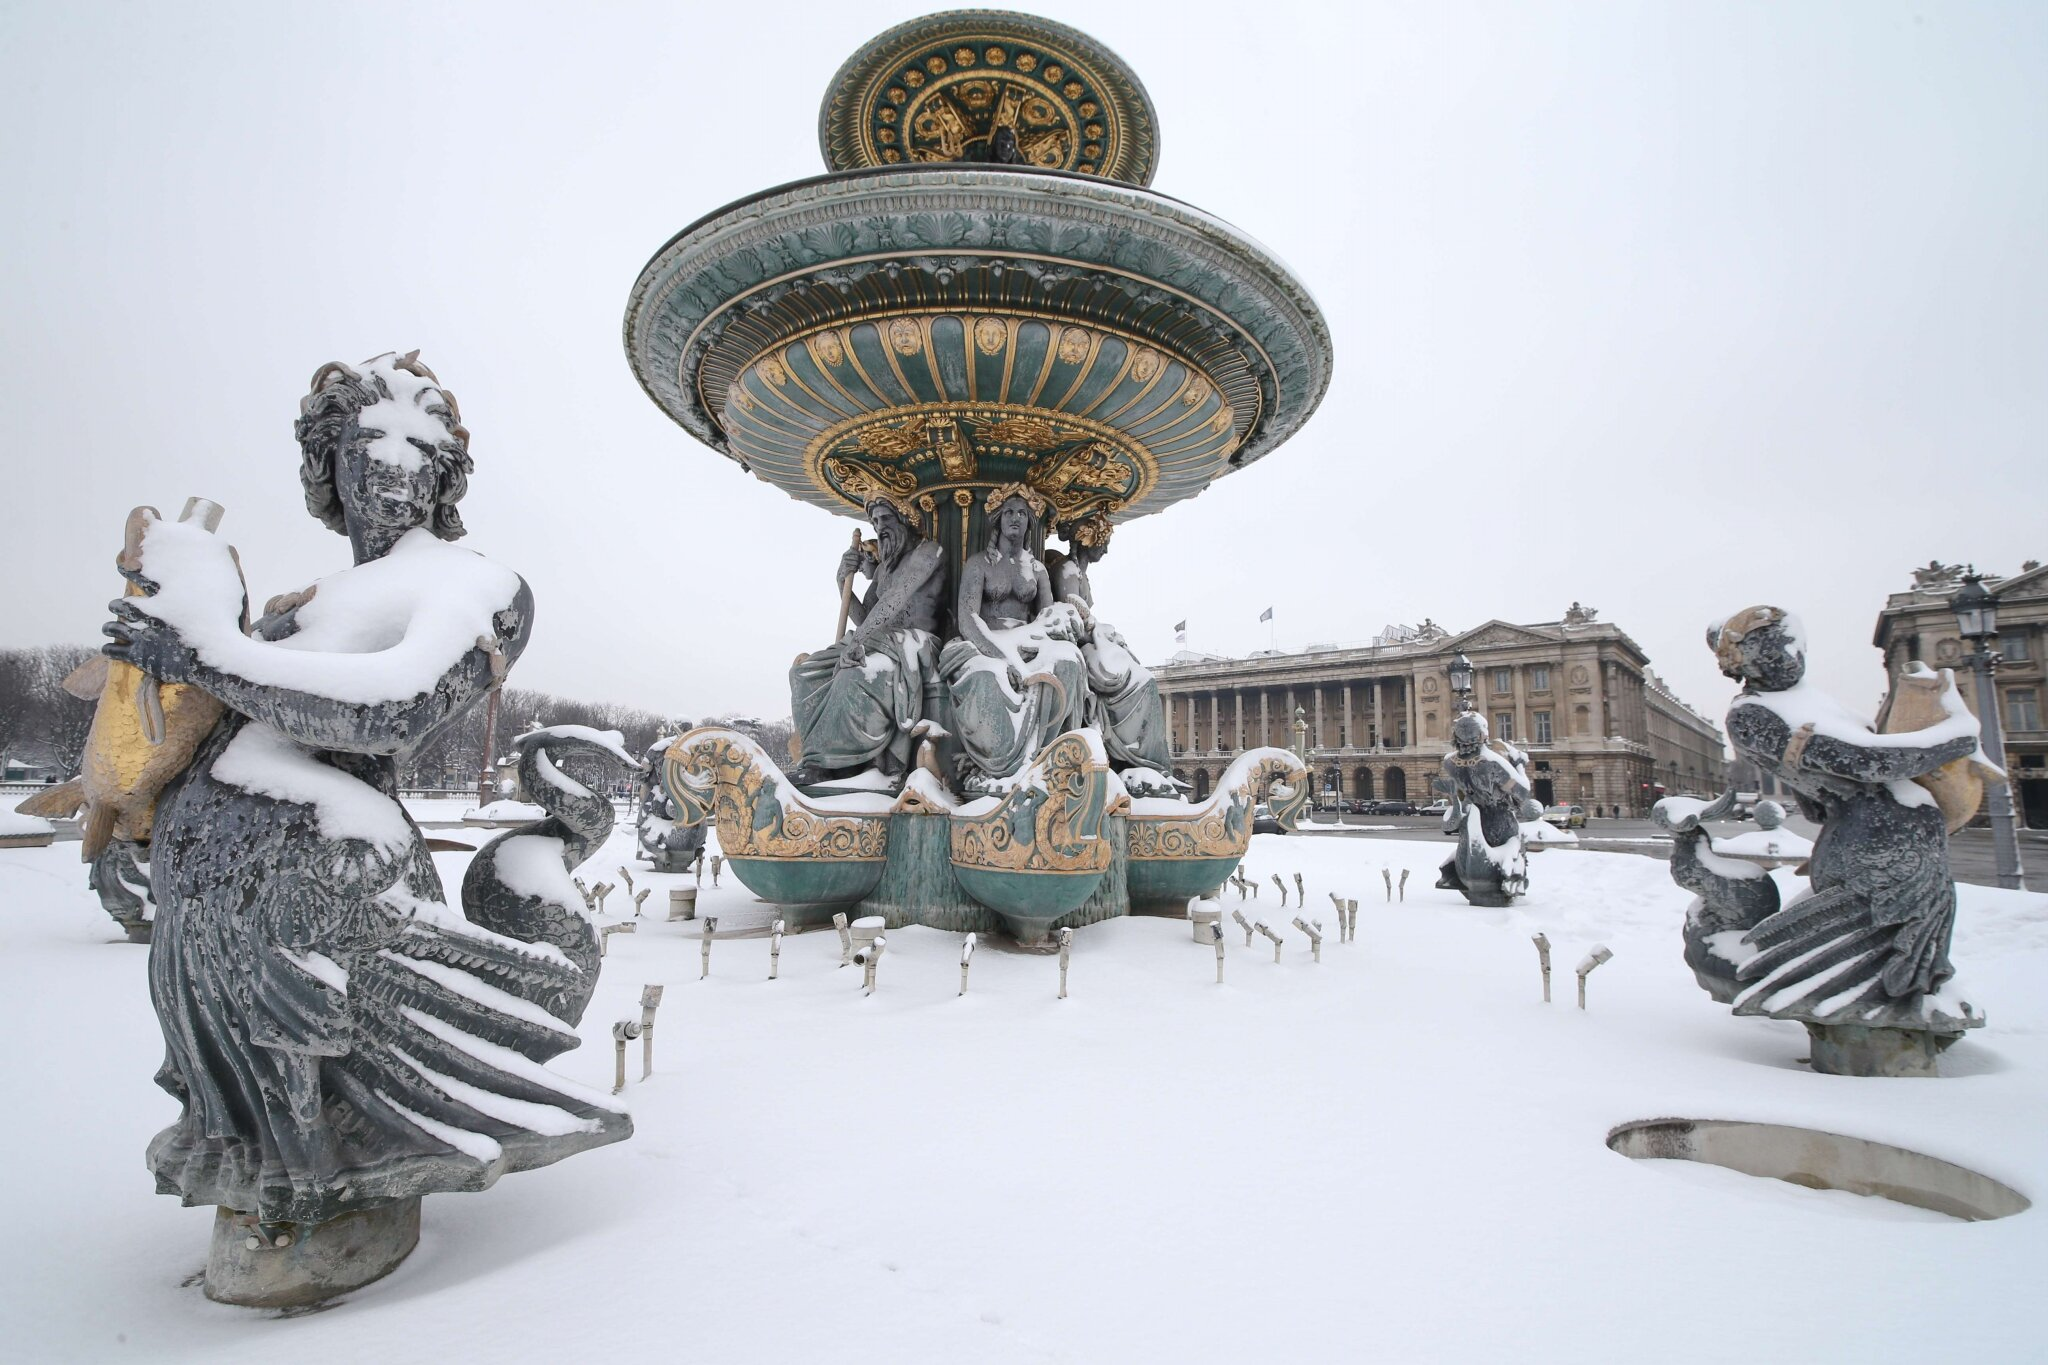 Paris sous la neige. © Photo Michel Stoupak. Sam 19.01.2013, 11:43.